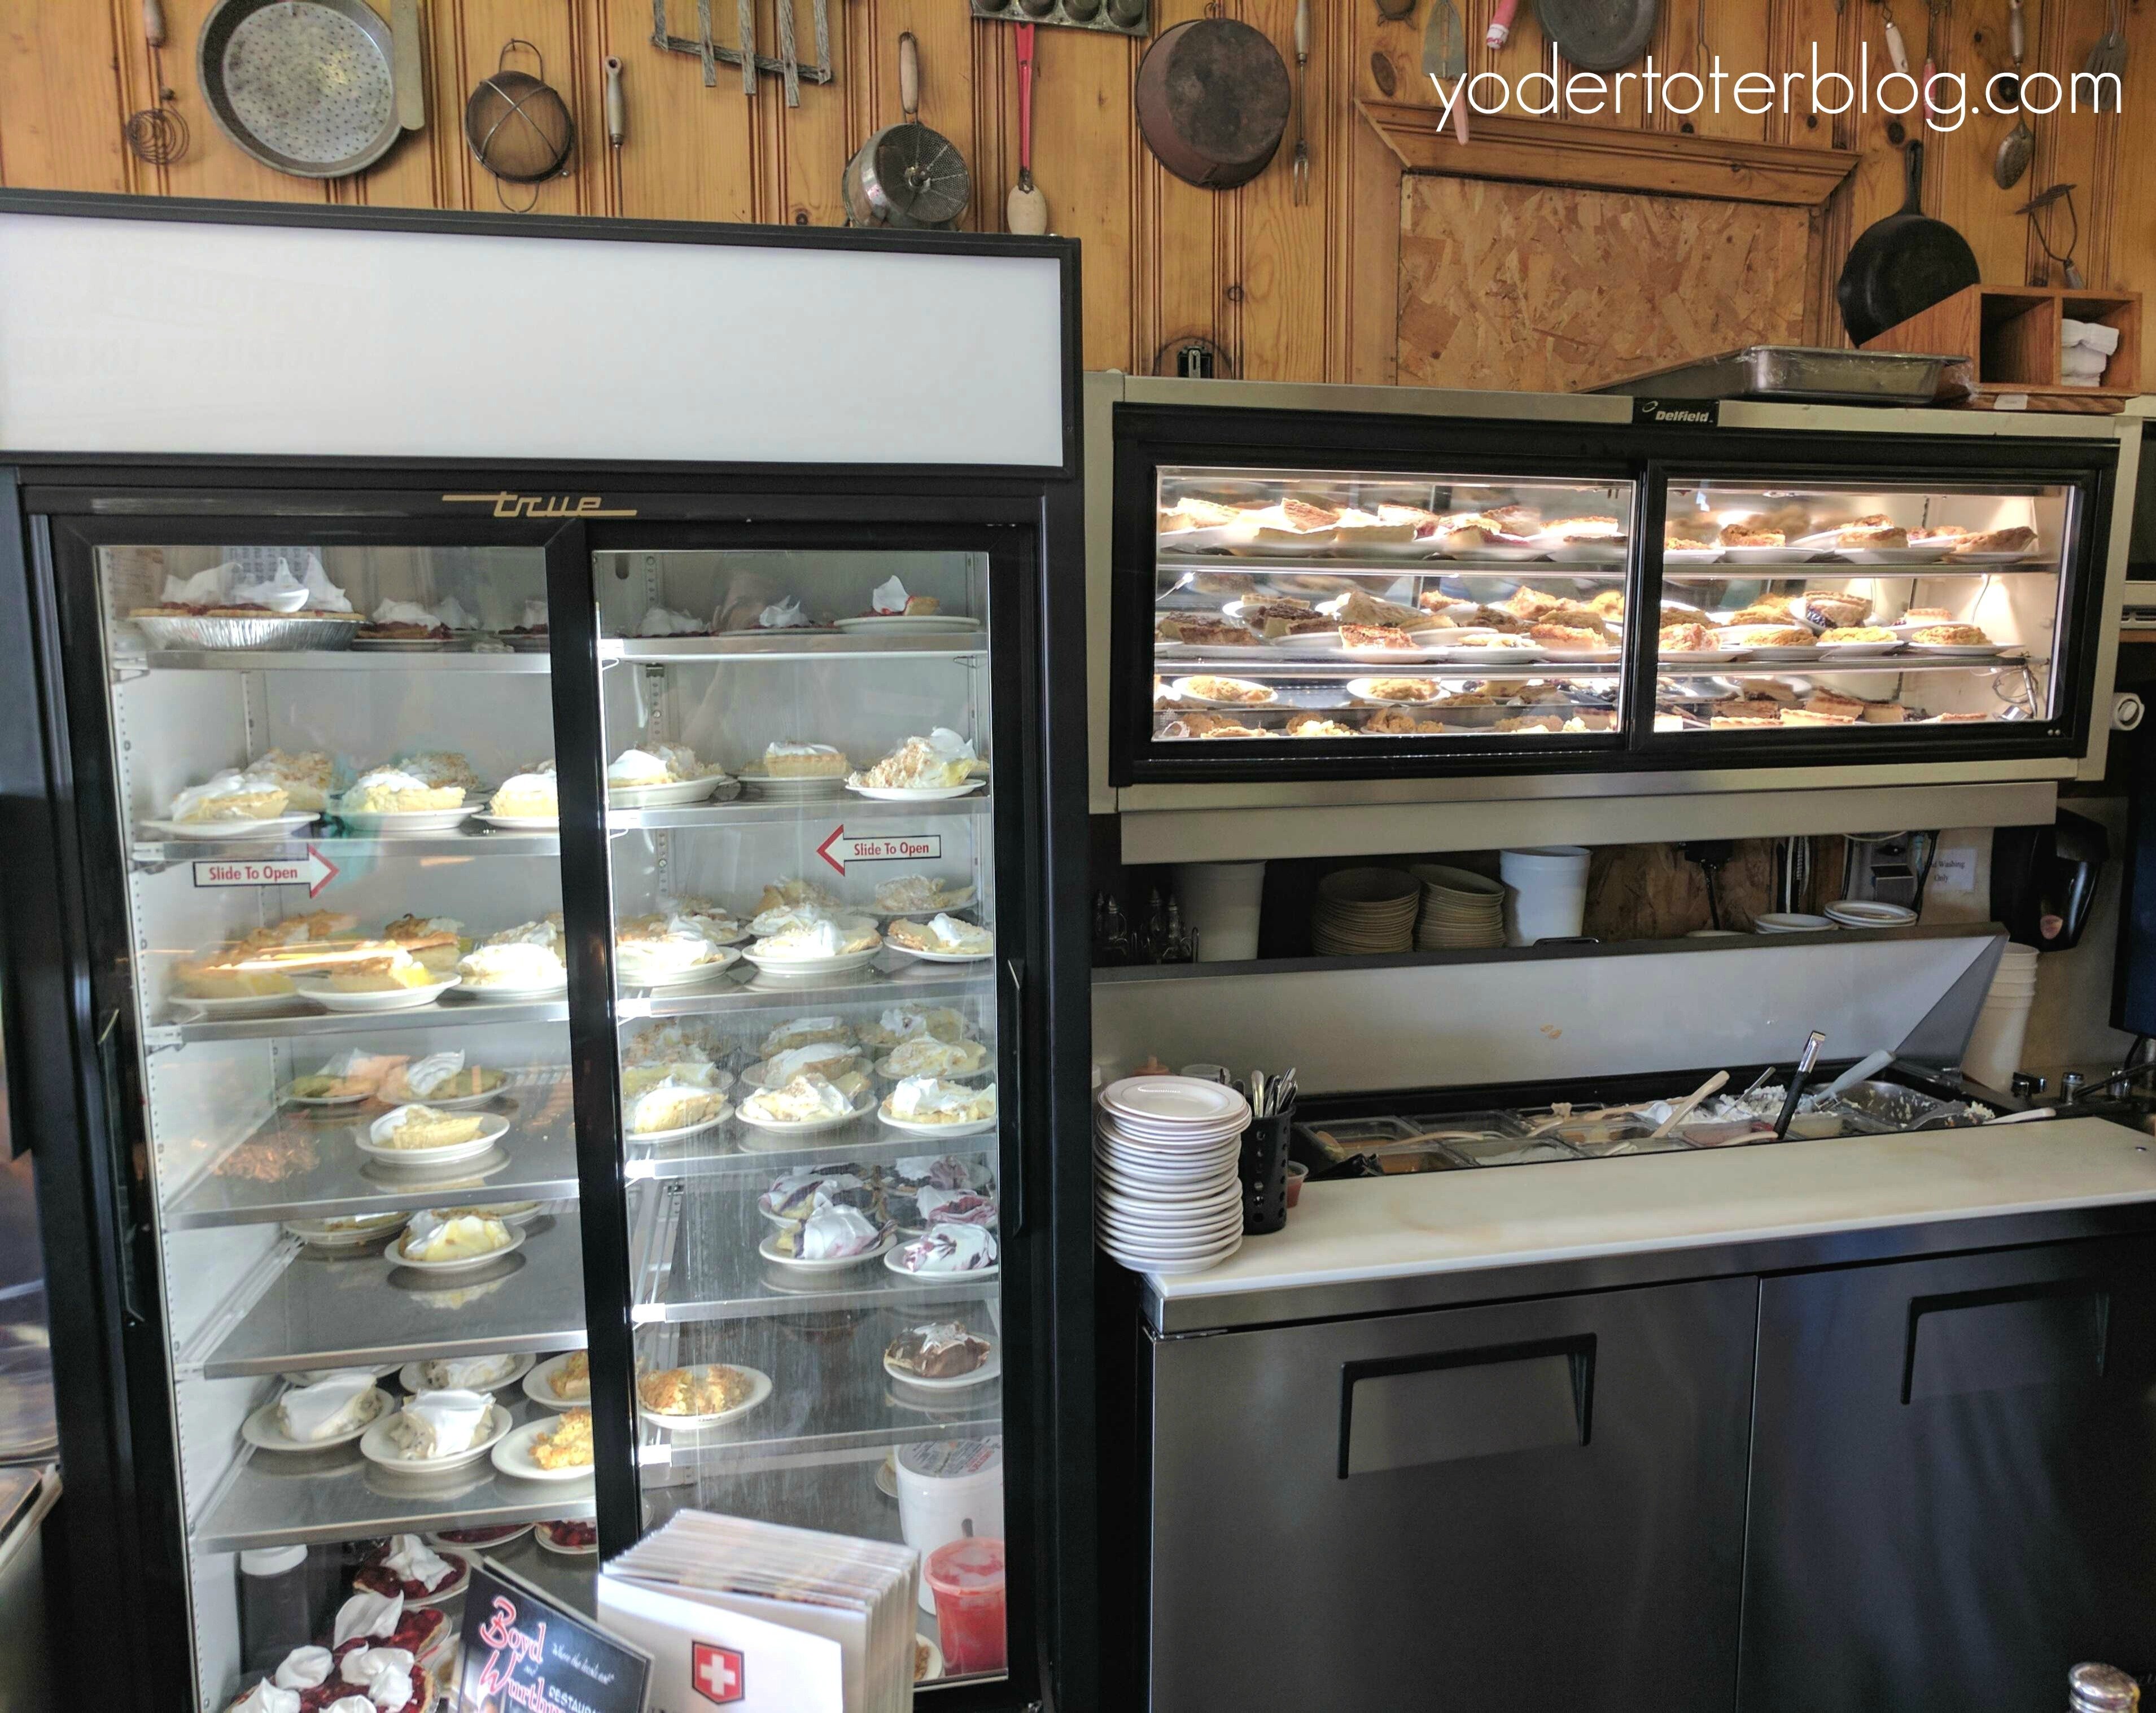 The best places to eat in Amish Country, Ohio - Boyd and Wurthmann